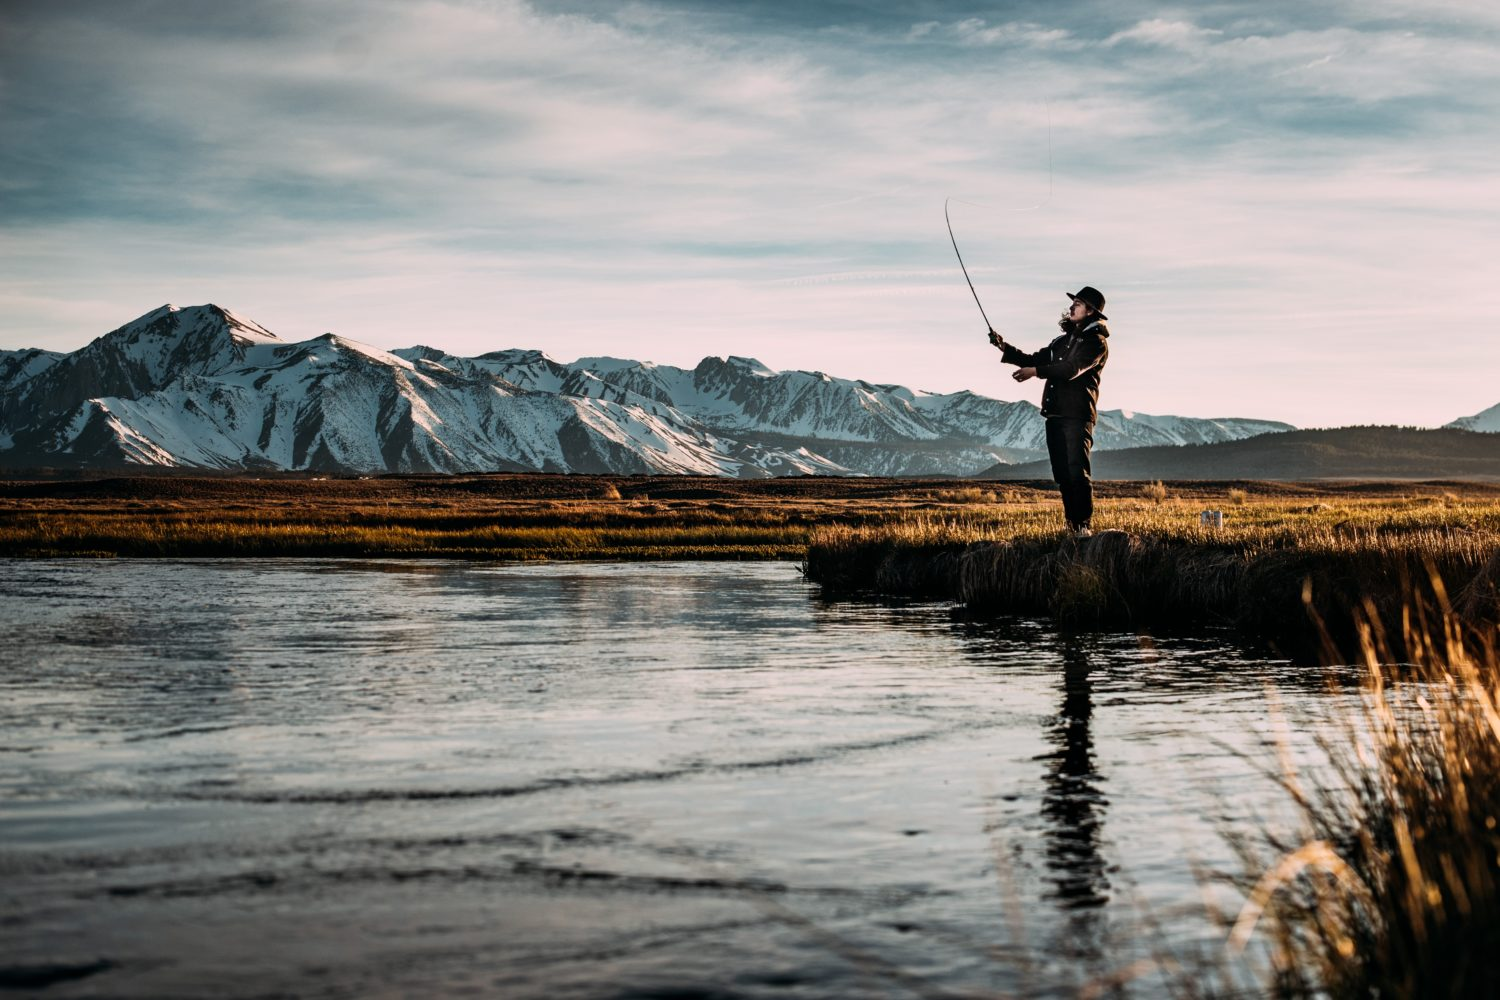 What Fly Fishing Has to Do with a LA Creative Agency